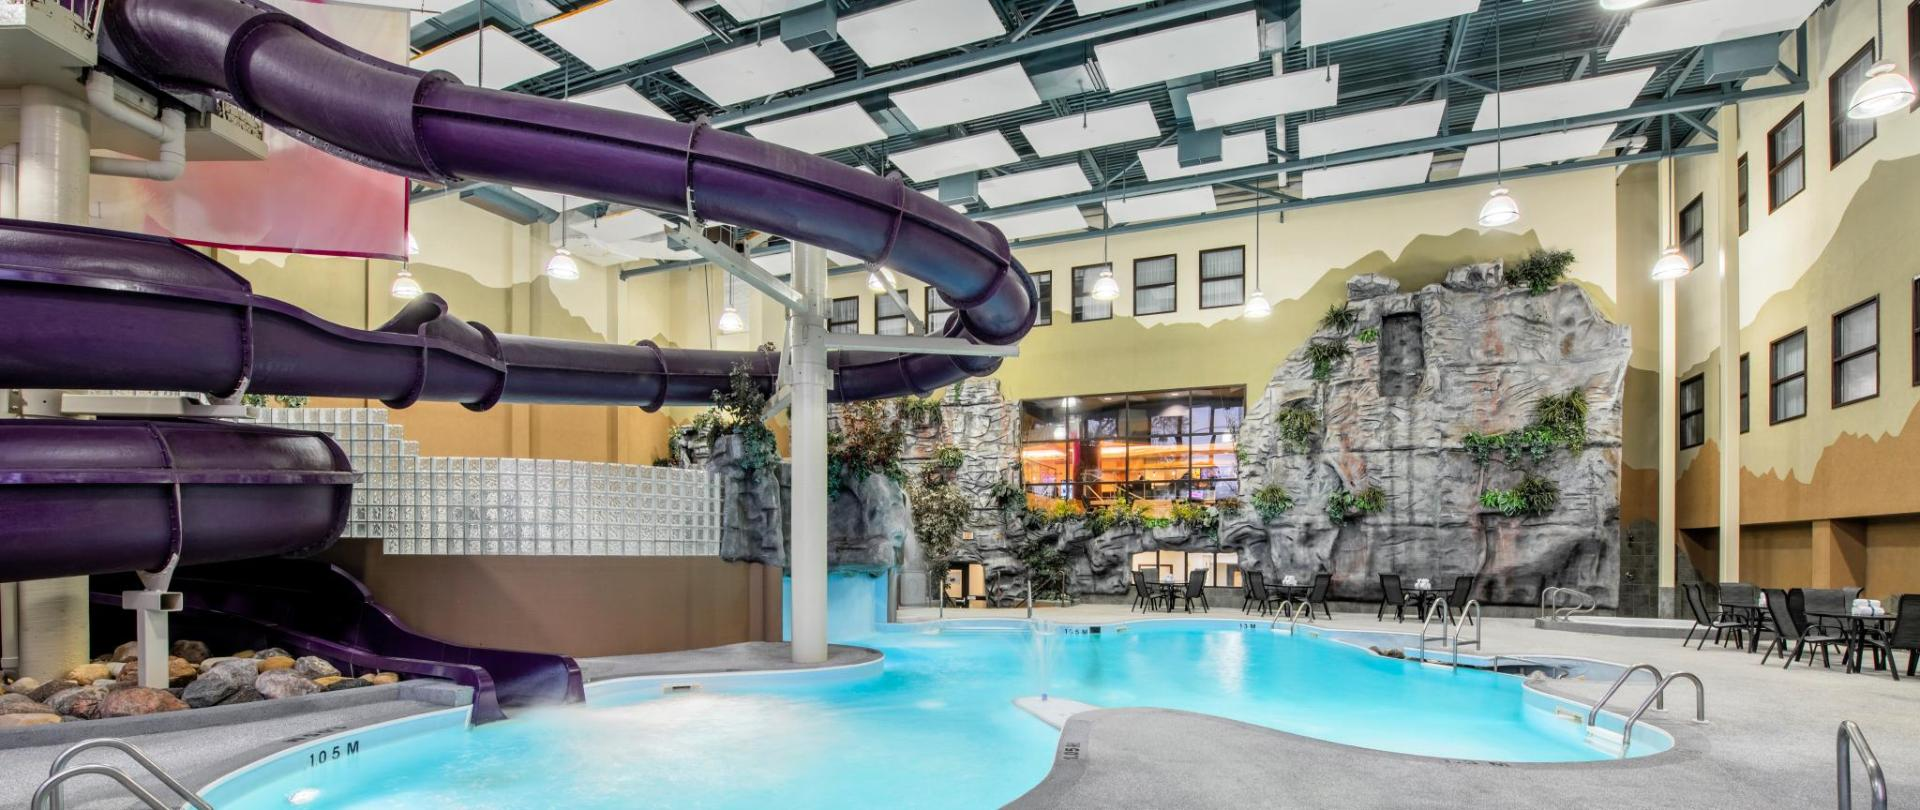 Clarion Hotel Indoor Waterpark with 2-storey Slide